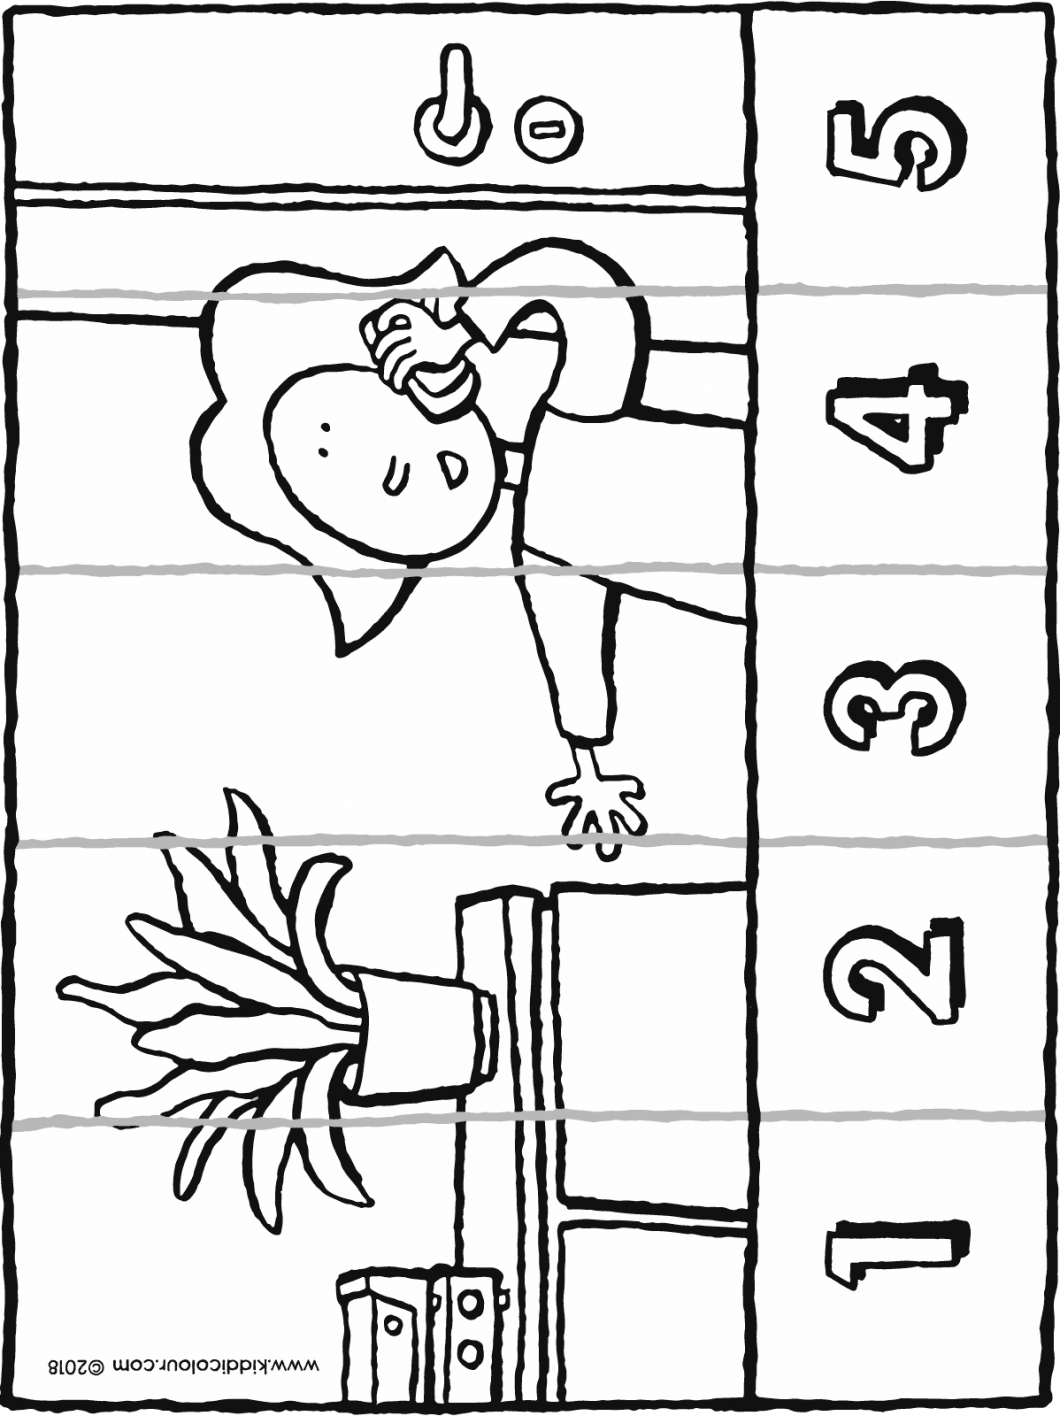 number sense from 1 to 5 Emma makes a phone call colouring page drawing picture 01H